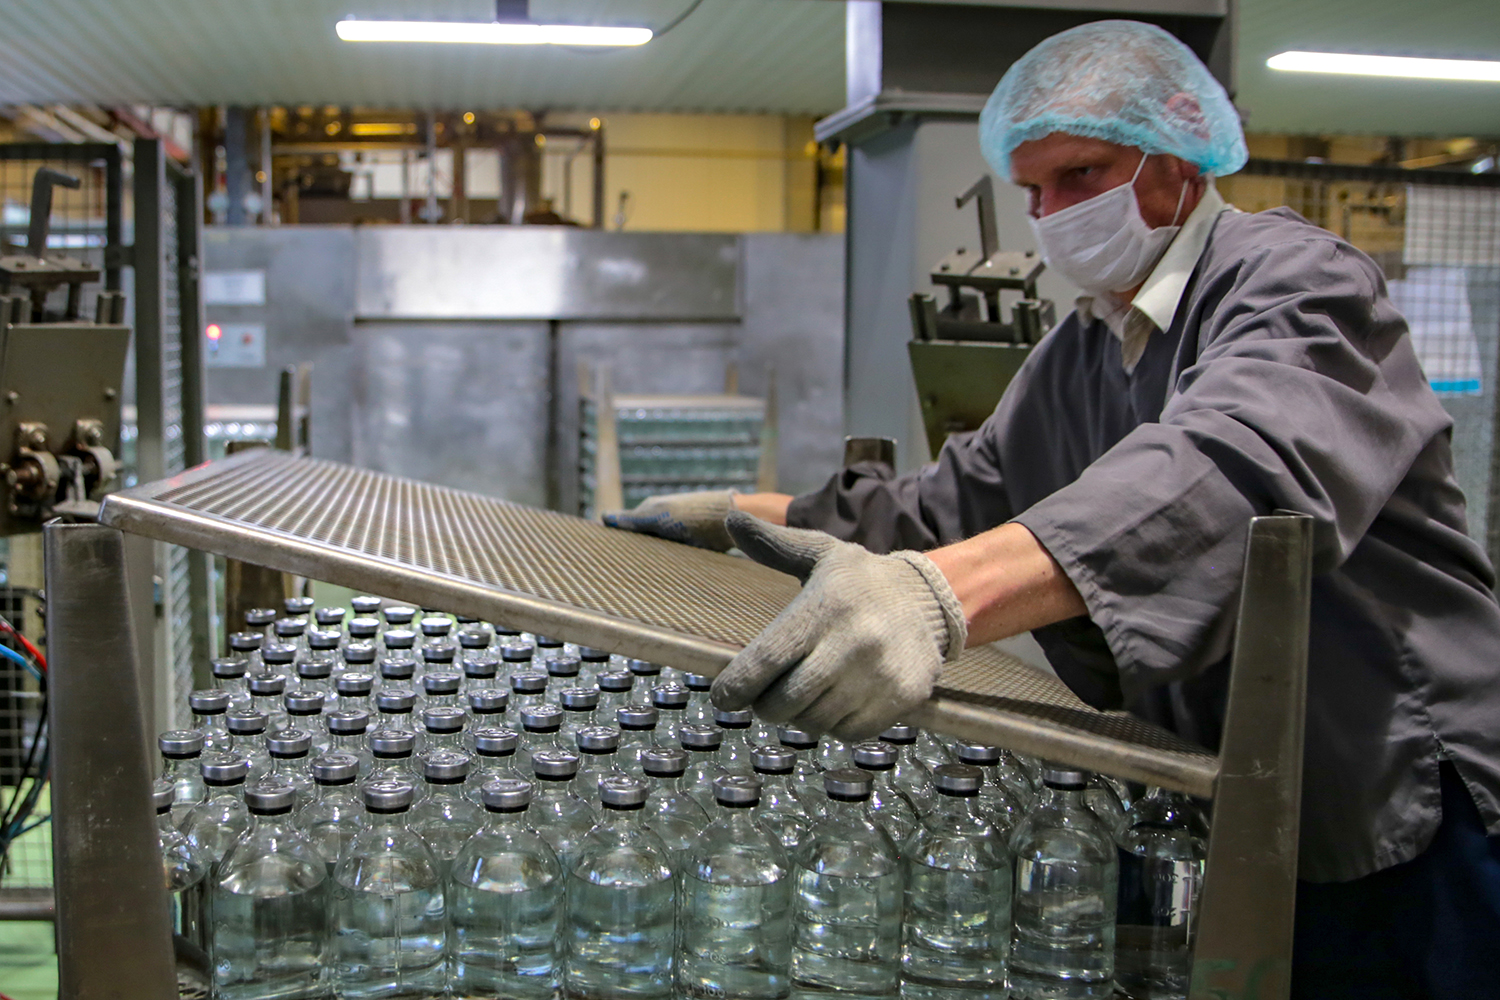 A man in a facemask works at a production facility of the pharmaceutical company Escom, which manufactures saline solution, glucose solution, and other infusion and injection solutions in Stavropol, Russia, on May 6. The factory has moved to round-the-clock production during the pandemic. Alexander PogozhevTASS via Getty Images